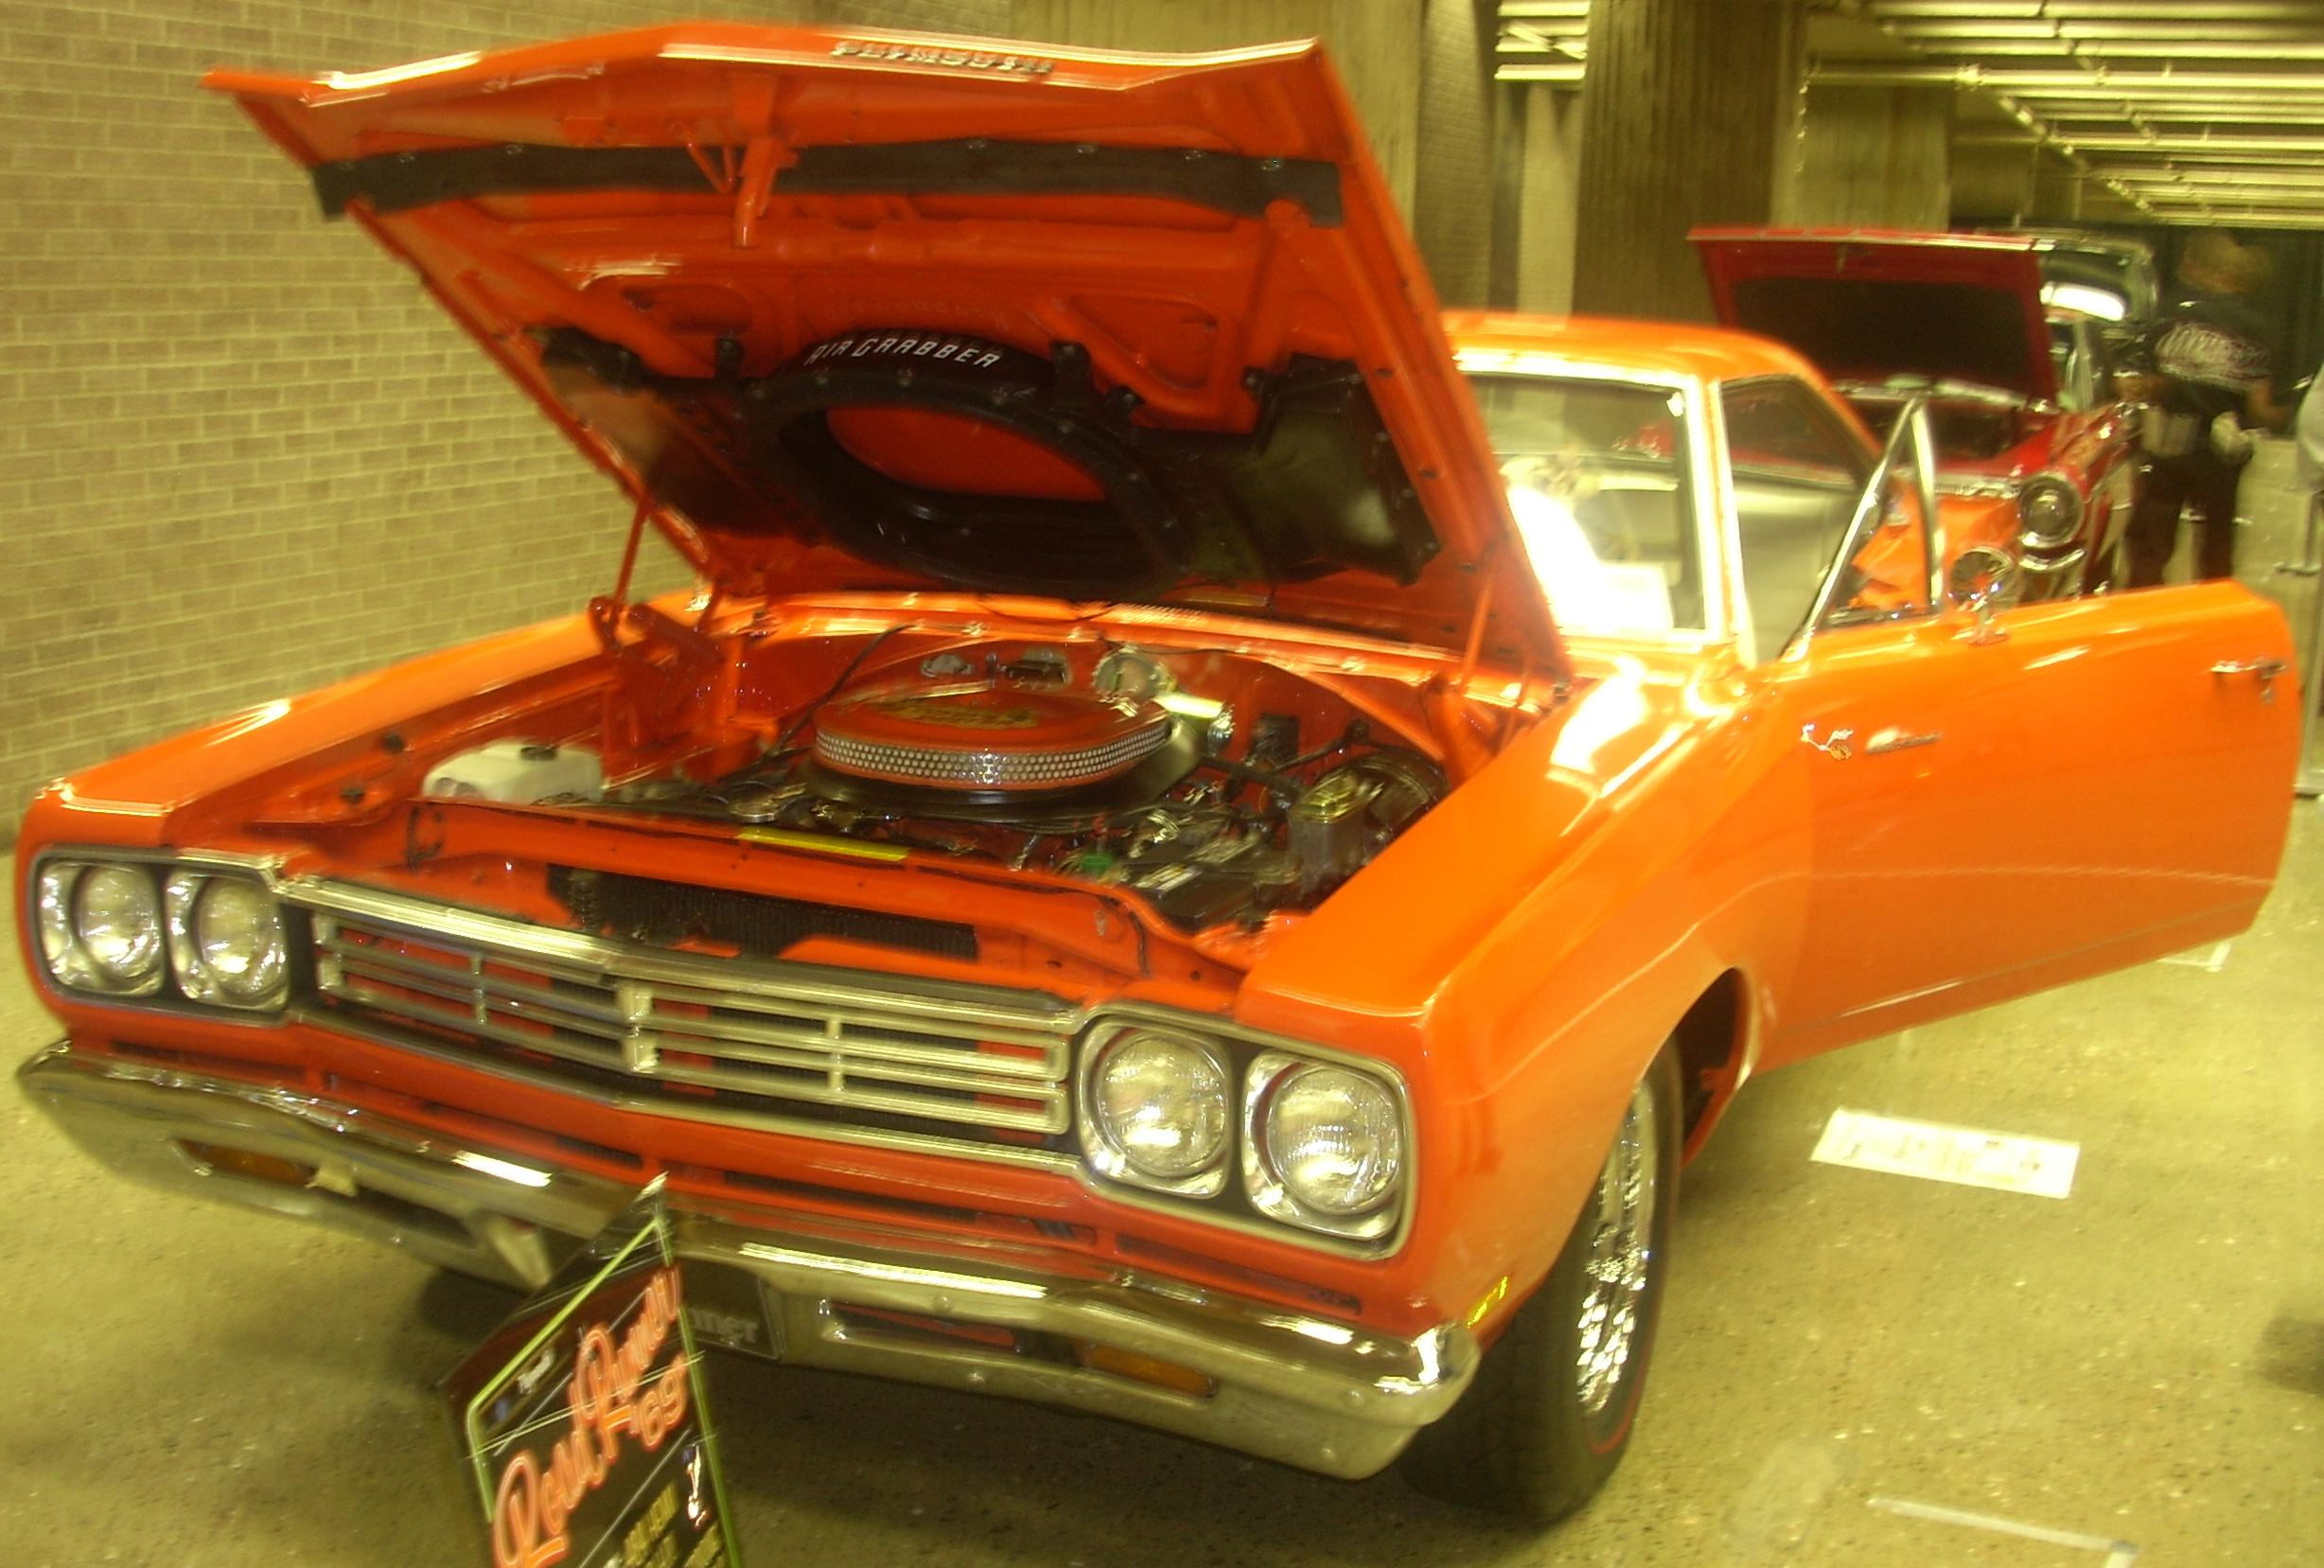 Index Of Pub Wikimedia Images Wikipedia Commons 0 08 Plymouth Road Runner Engine Bay Diagram 69 Auto Classique